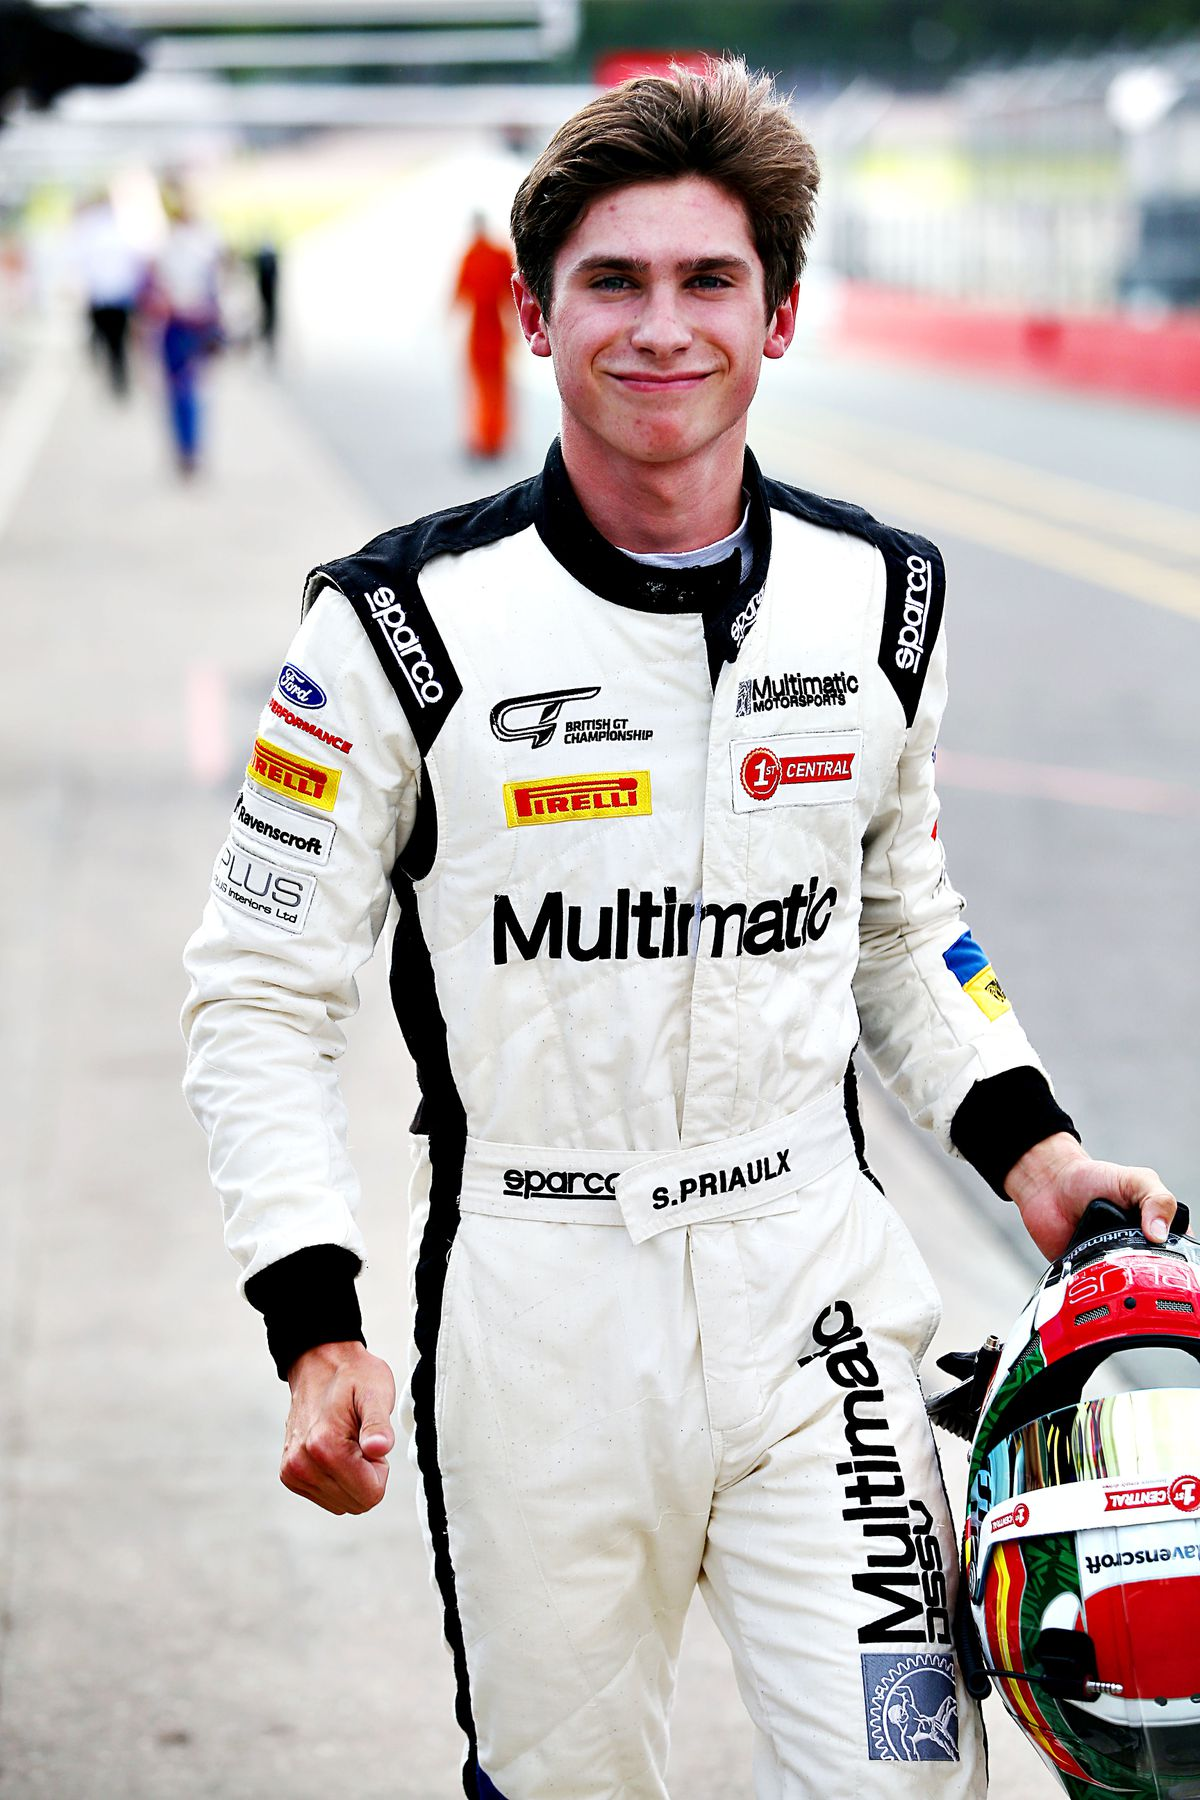 Seb Priaulx, pictured,  and teammate Scott Maxwell were issued with a post-race 40-second penalty at Brands Hatch. (Picture by Jakob Ebrey Photography, 25436334)